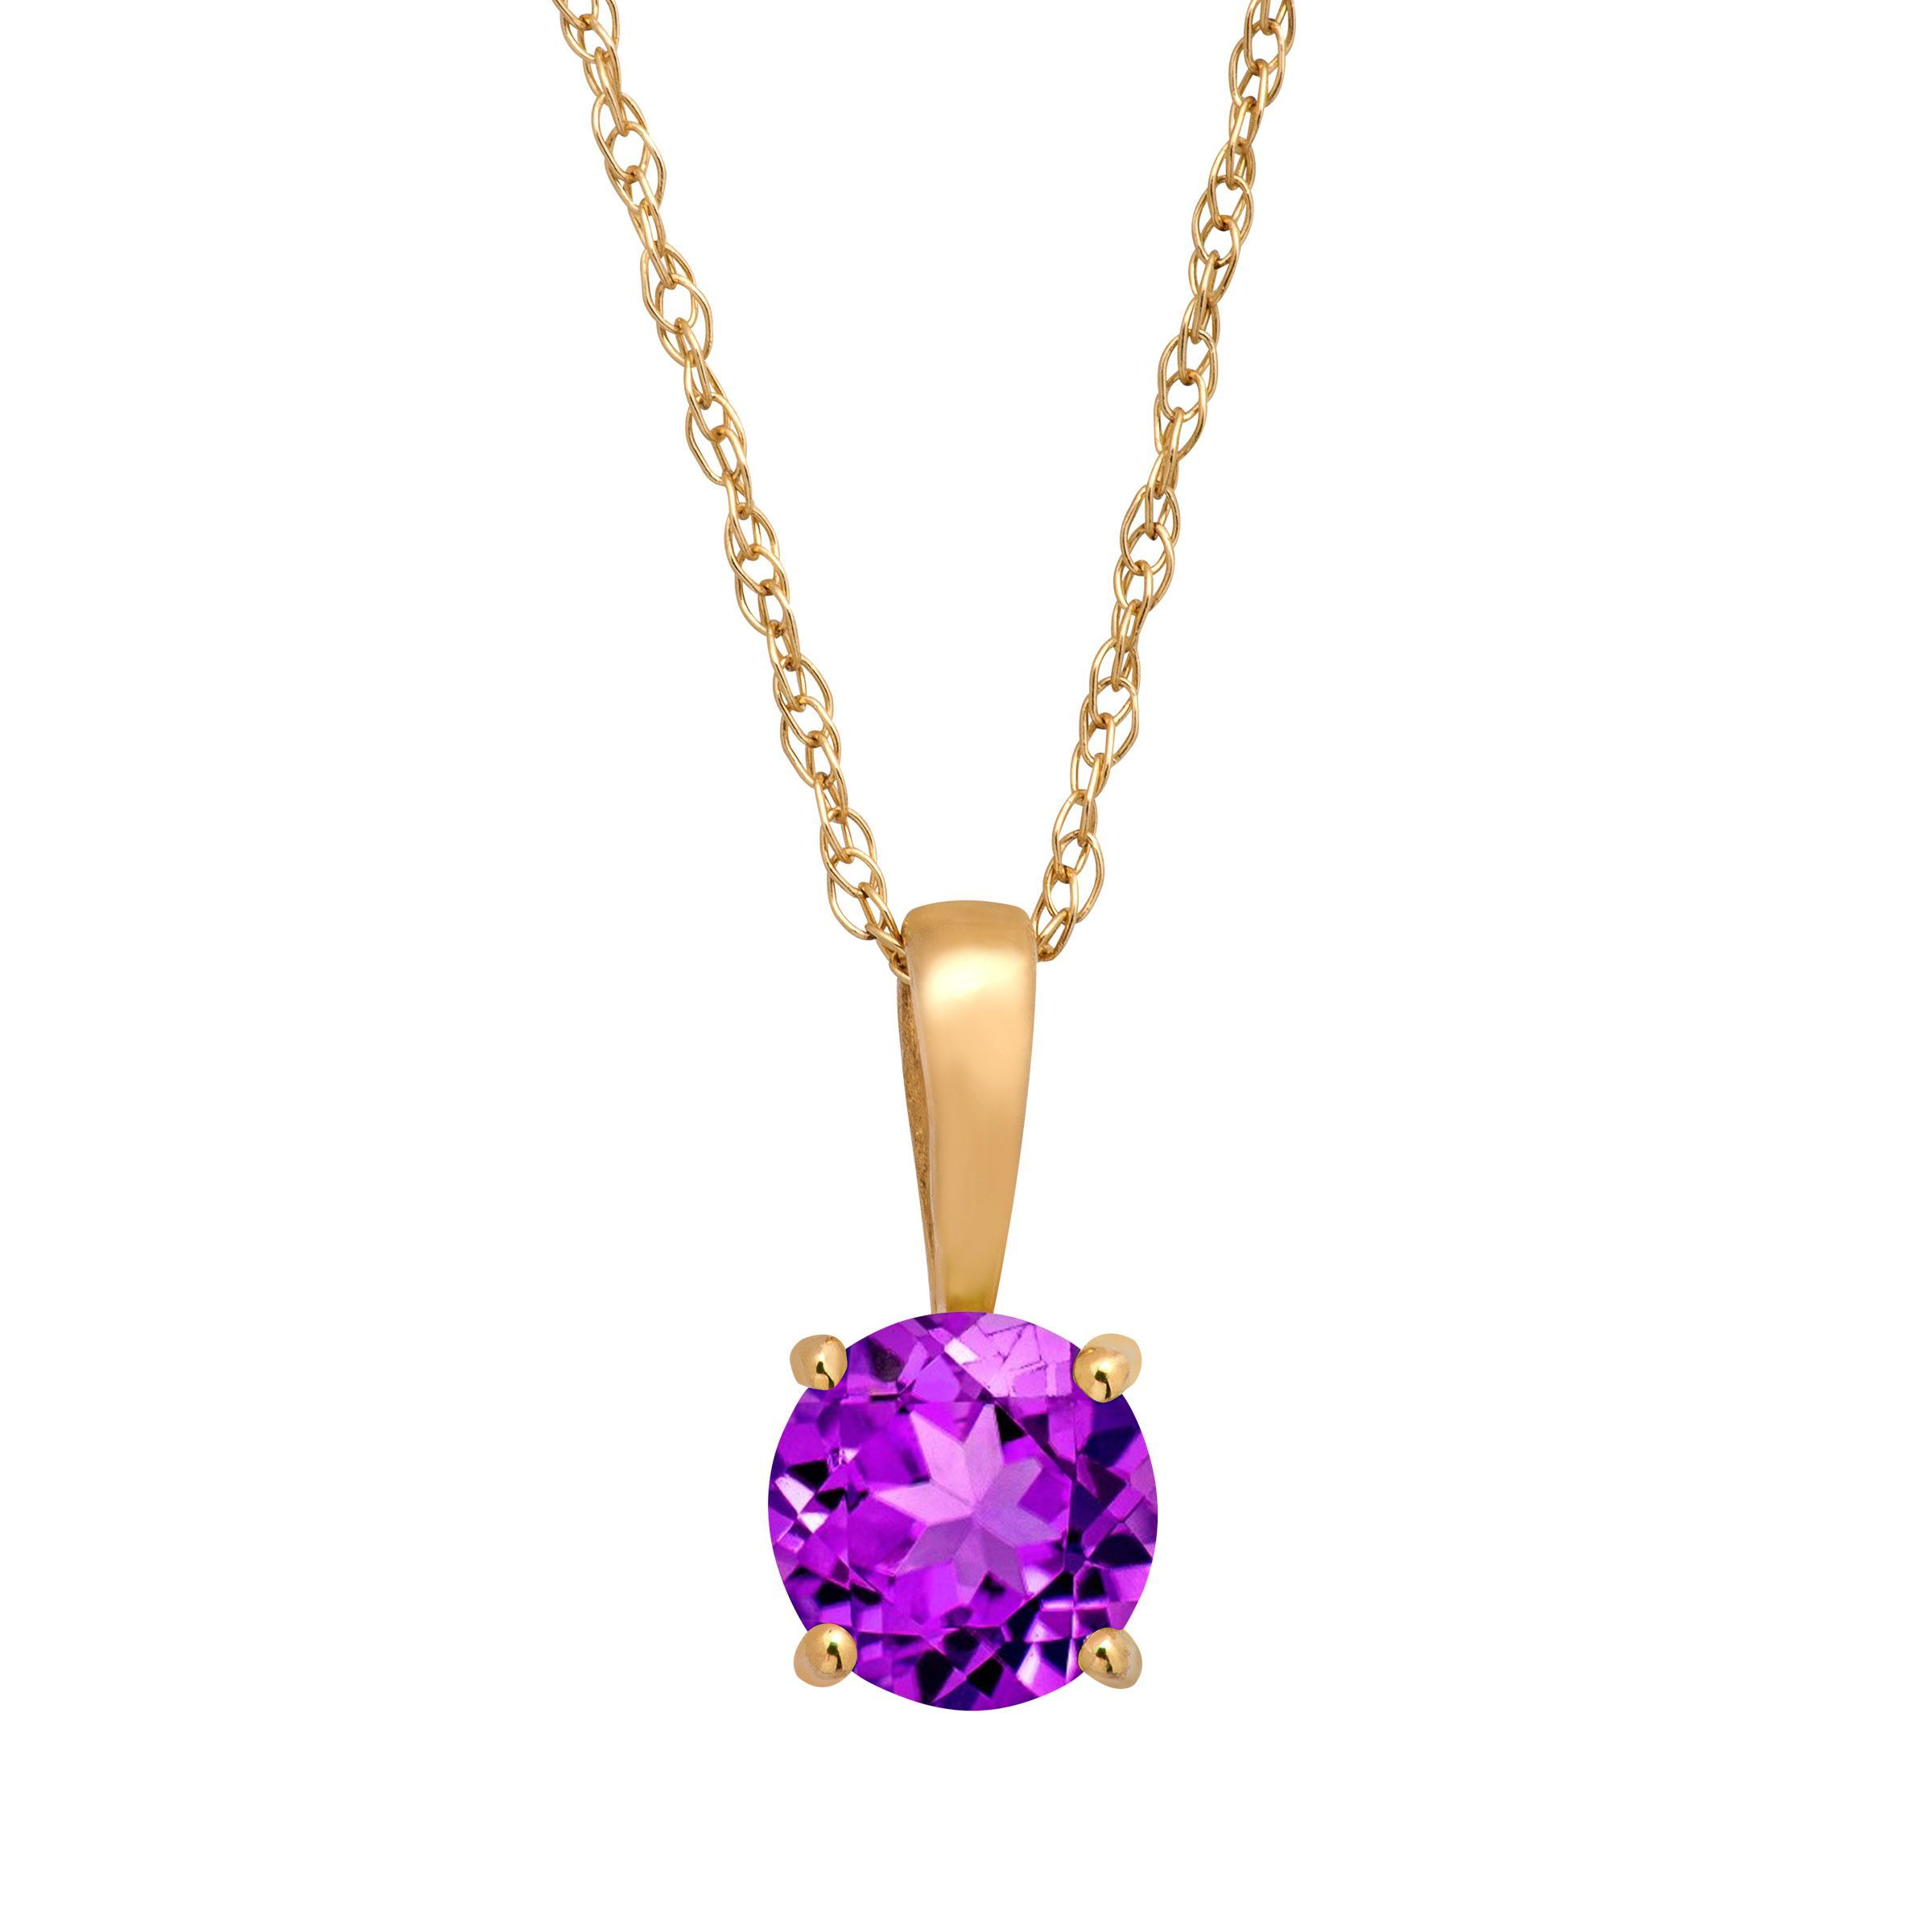 38 ct natural round cut amethyst pendant necklace in 10k yellow 38 ct natural round cut amethyst pendant necklace in 10k yellow gold 16 mozeypictures Gallery